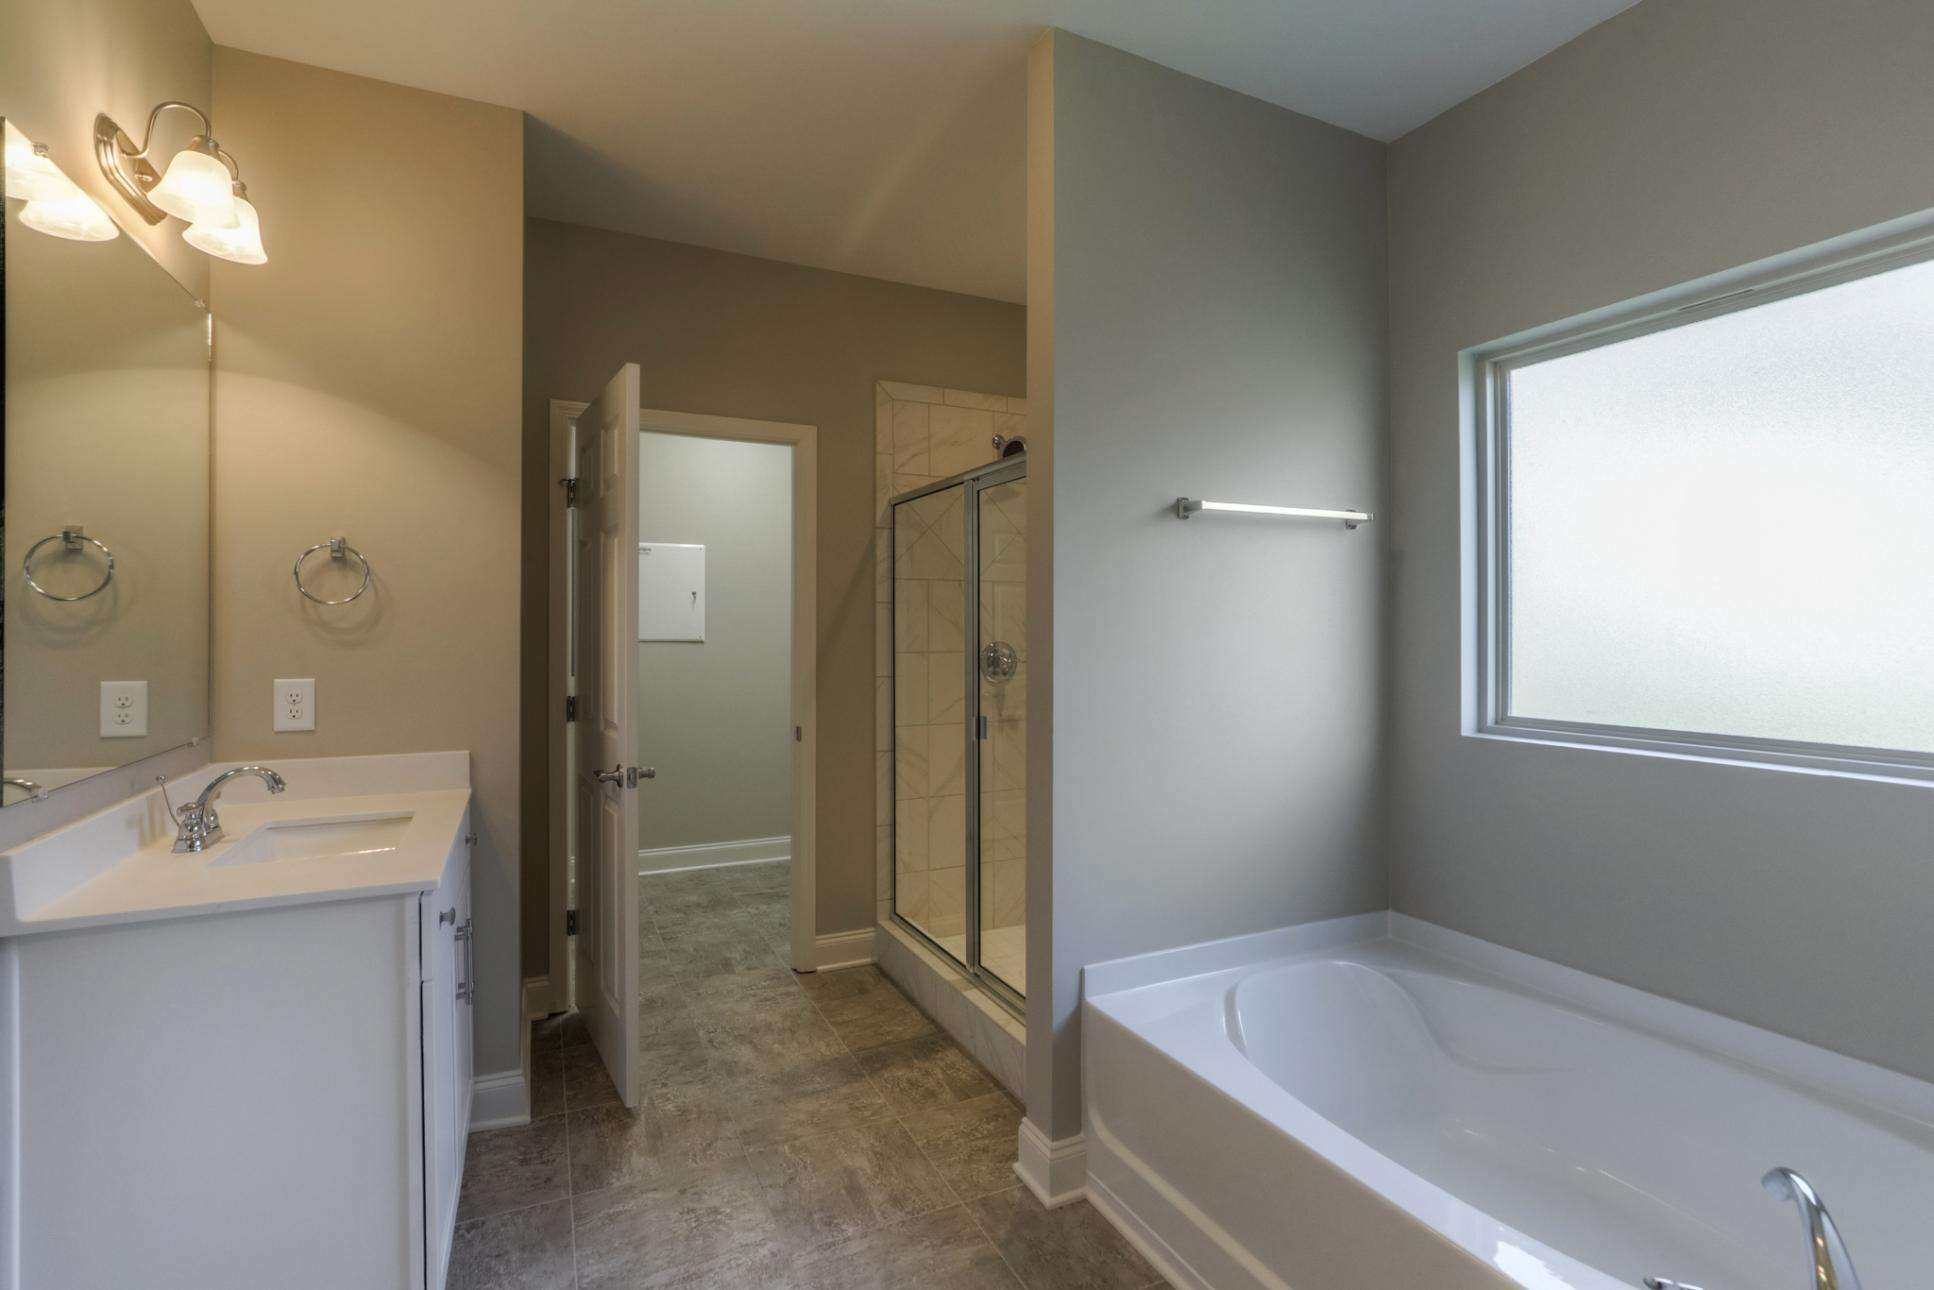 Bathroom featured in The Springmont By Goodall Homes in Knoxville, TN